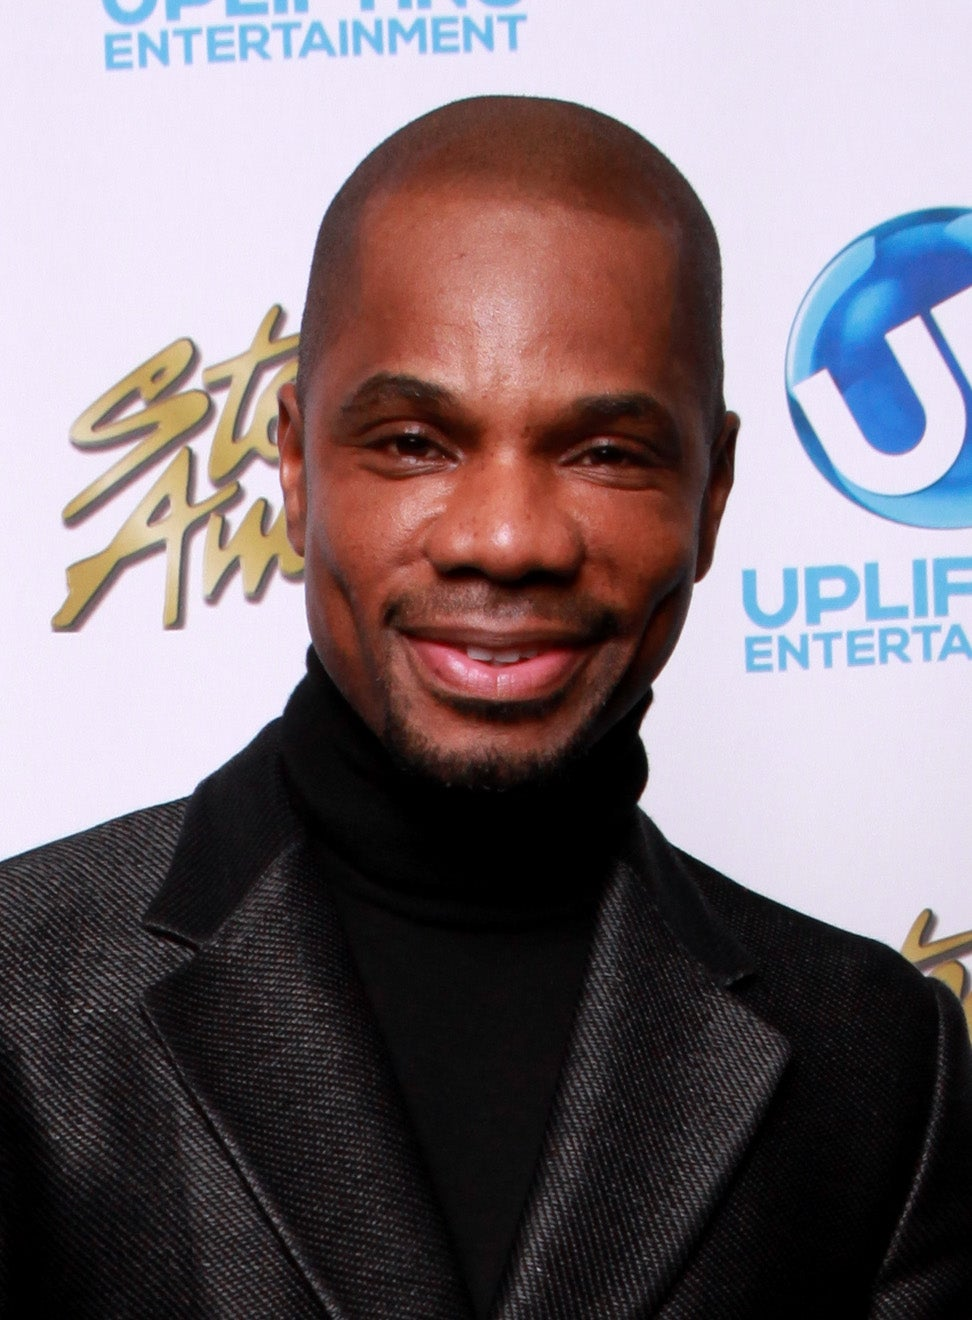 Kirk Franklin Apologizes for Black Church's Treatment of LGBT Community: 'We Haven't Treated Them Like People'